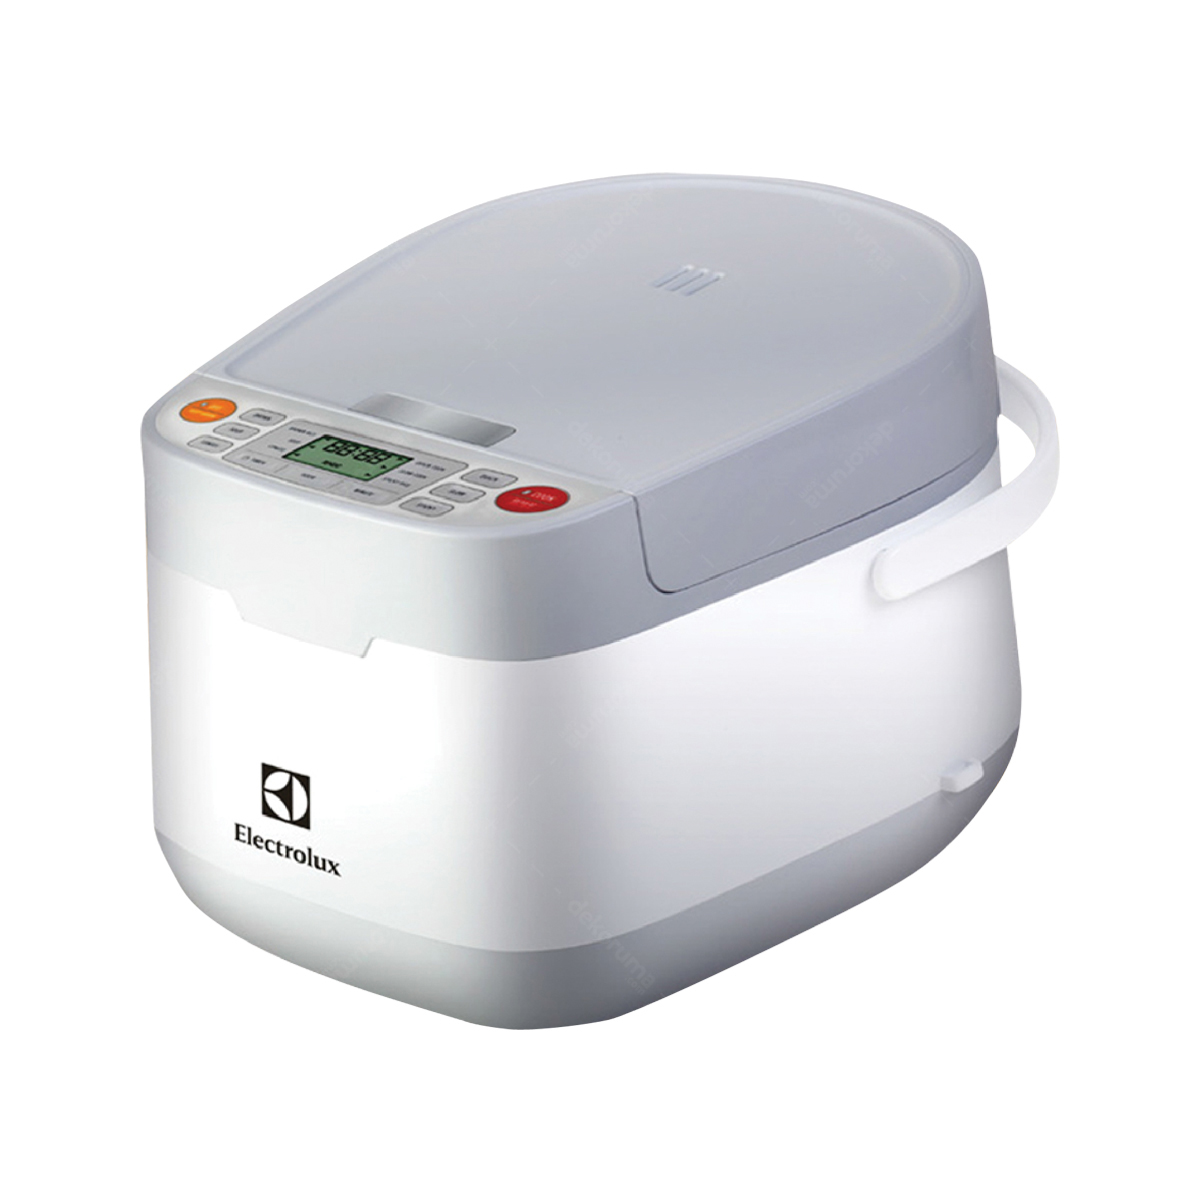 Electrolux Rice Cooker Fuzzy Logic